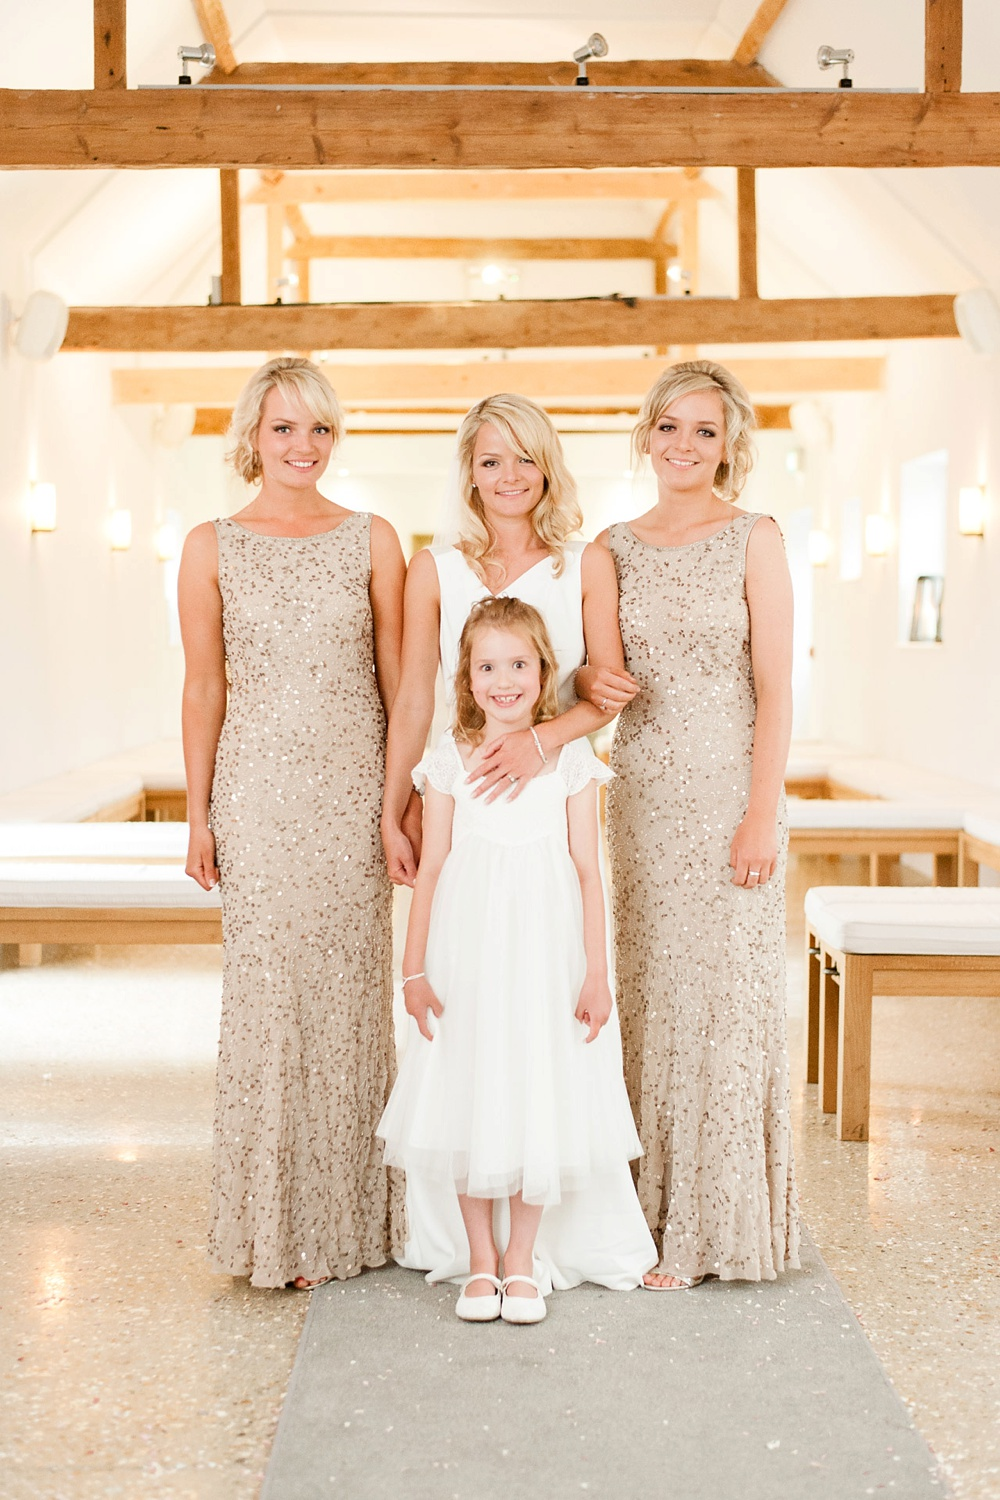 Southend Barns Elegant Wedding With Gold & White Colour Scheme Bride ...